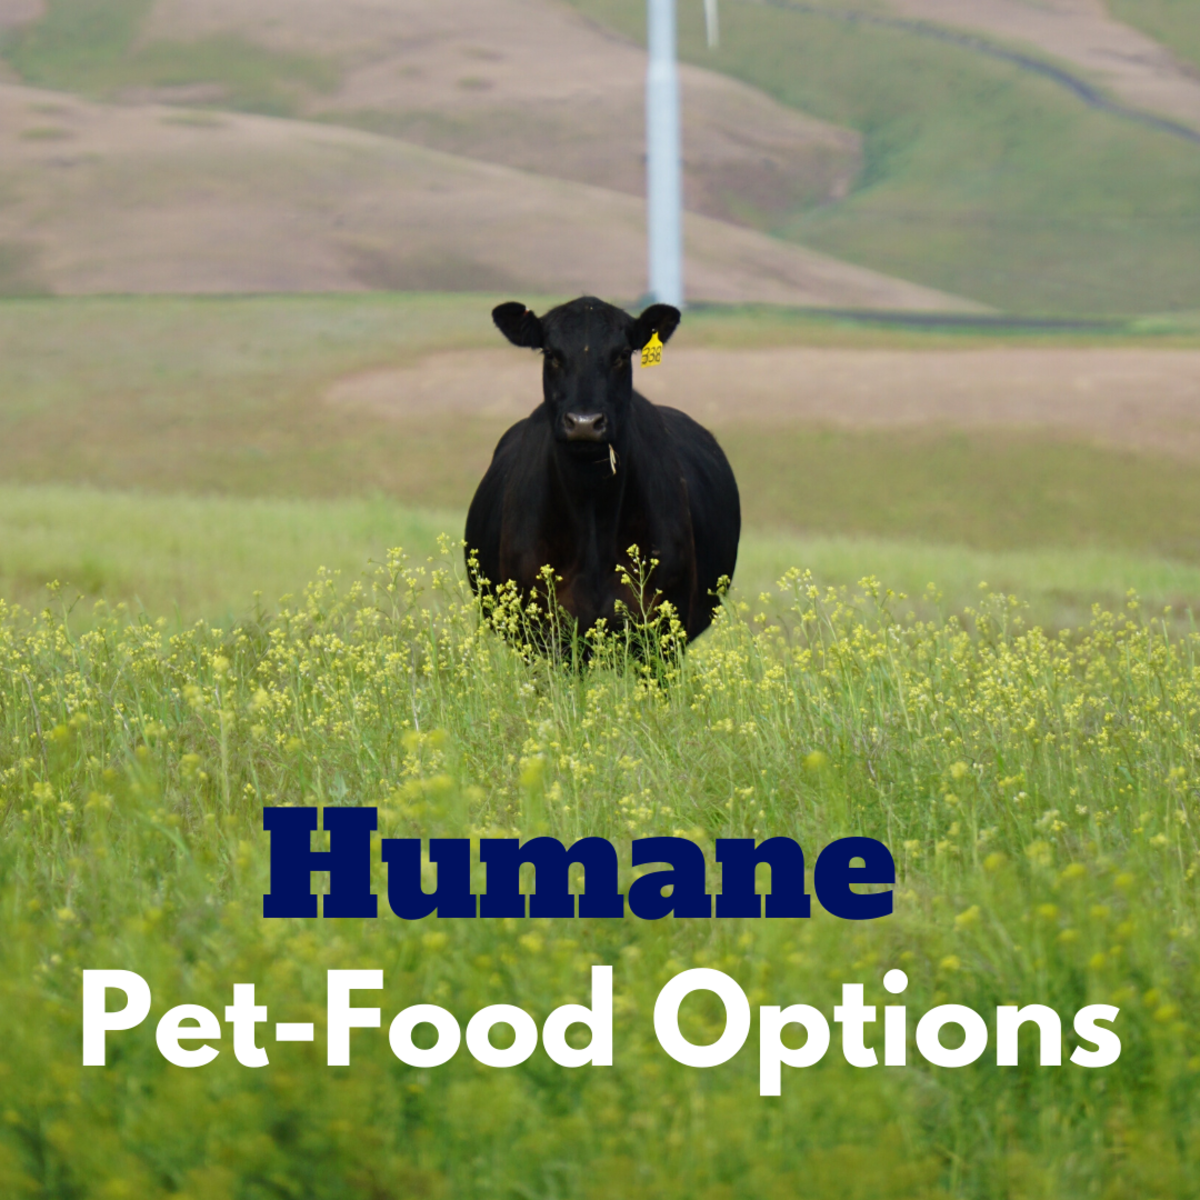 Organic, Free-Range, and Humane Dog and Cat Food Options